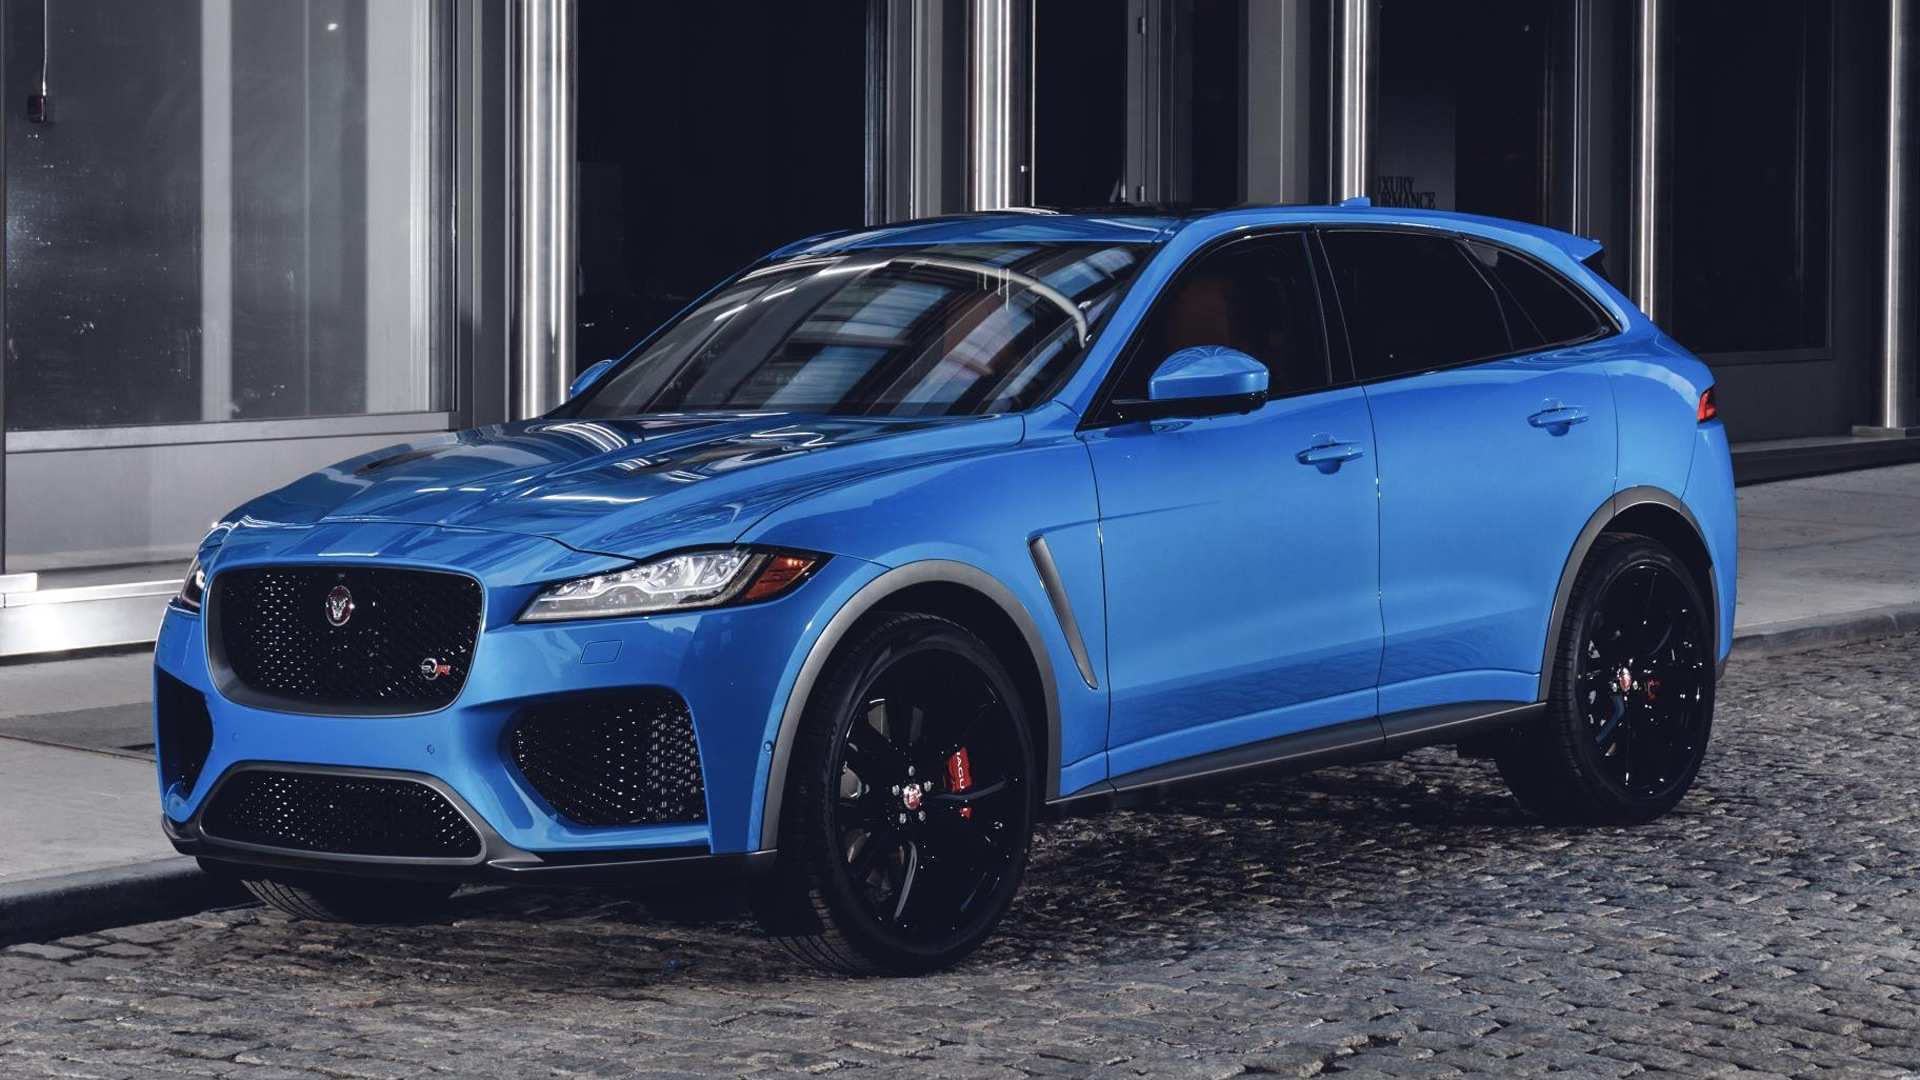 18 Great Jaguar F Pace 2020 New Concept New Review with Jaguar F Pace 2020 New Concept